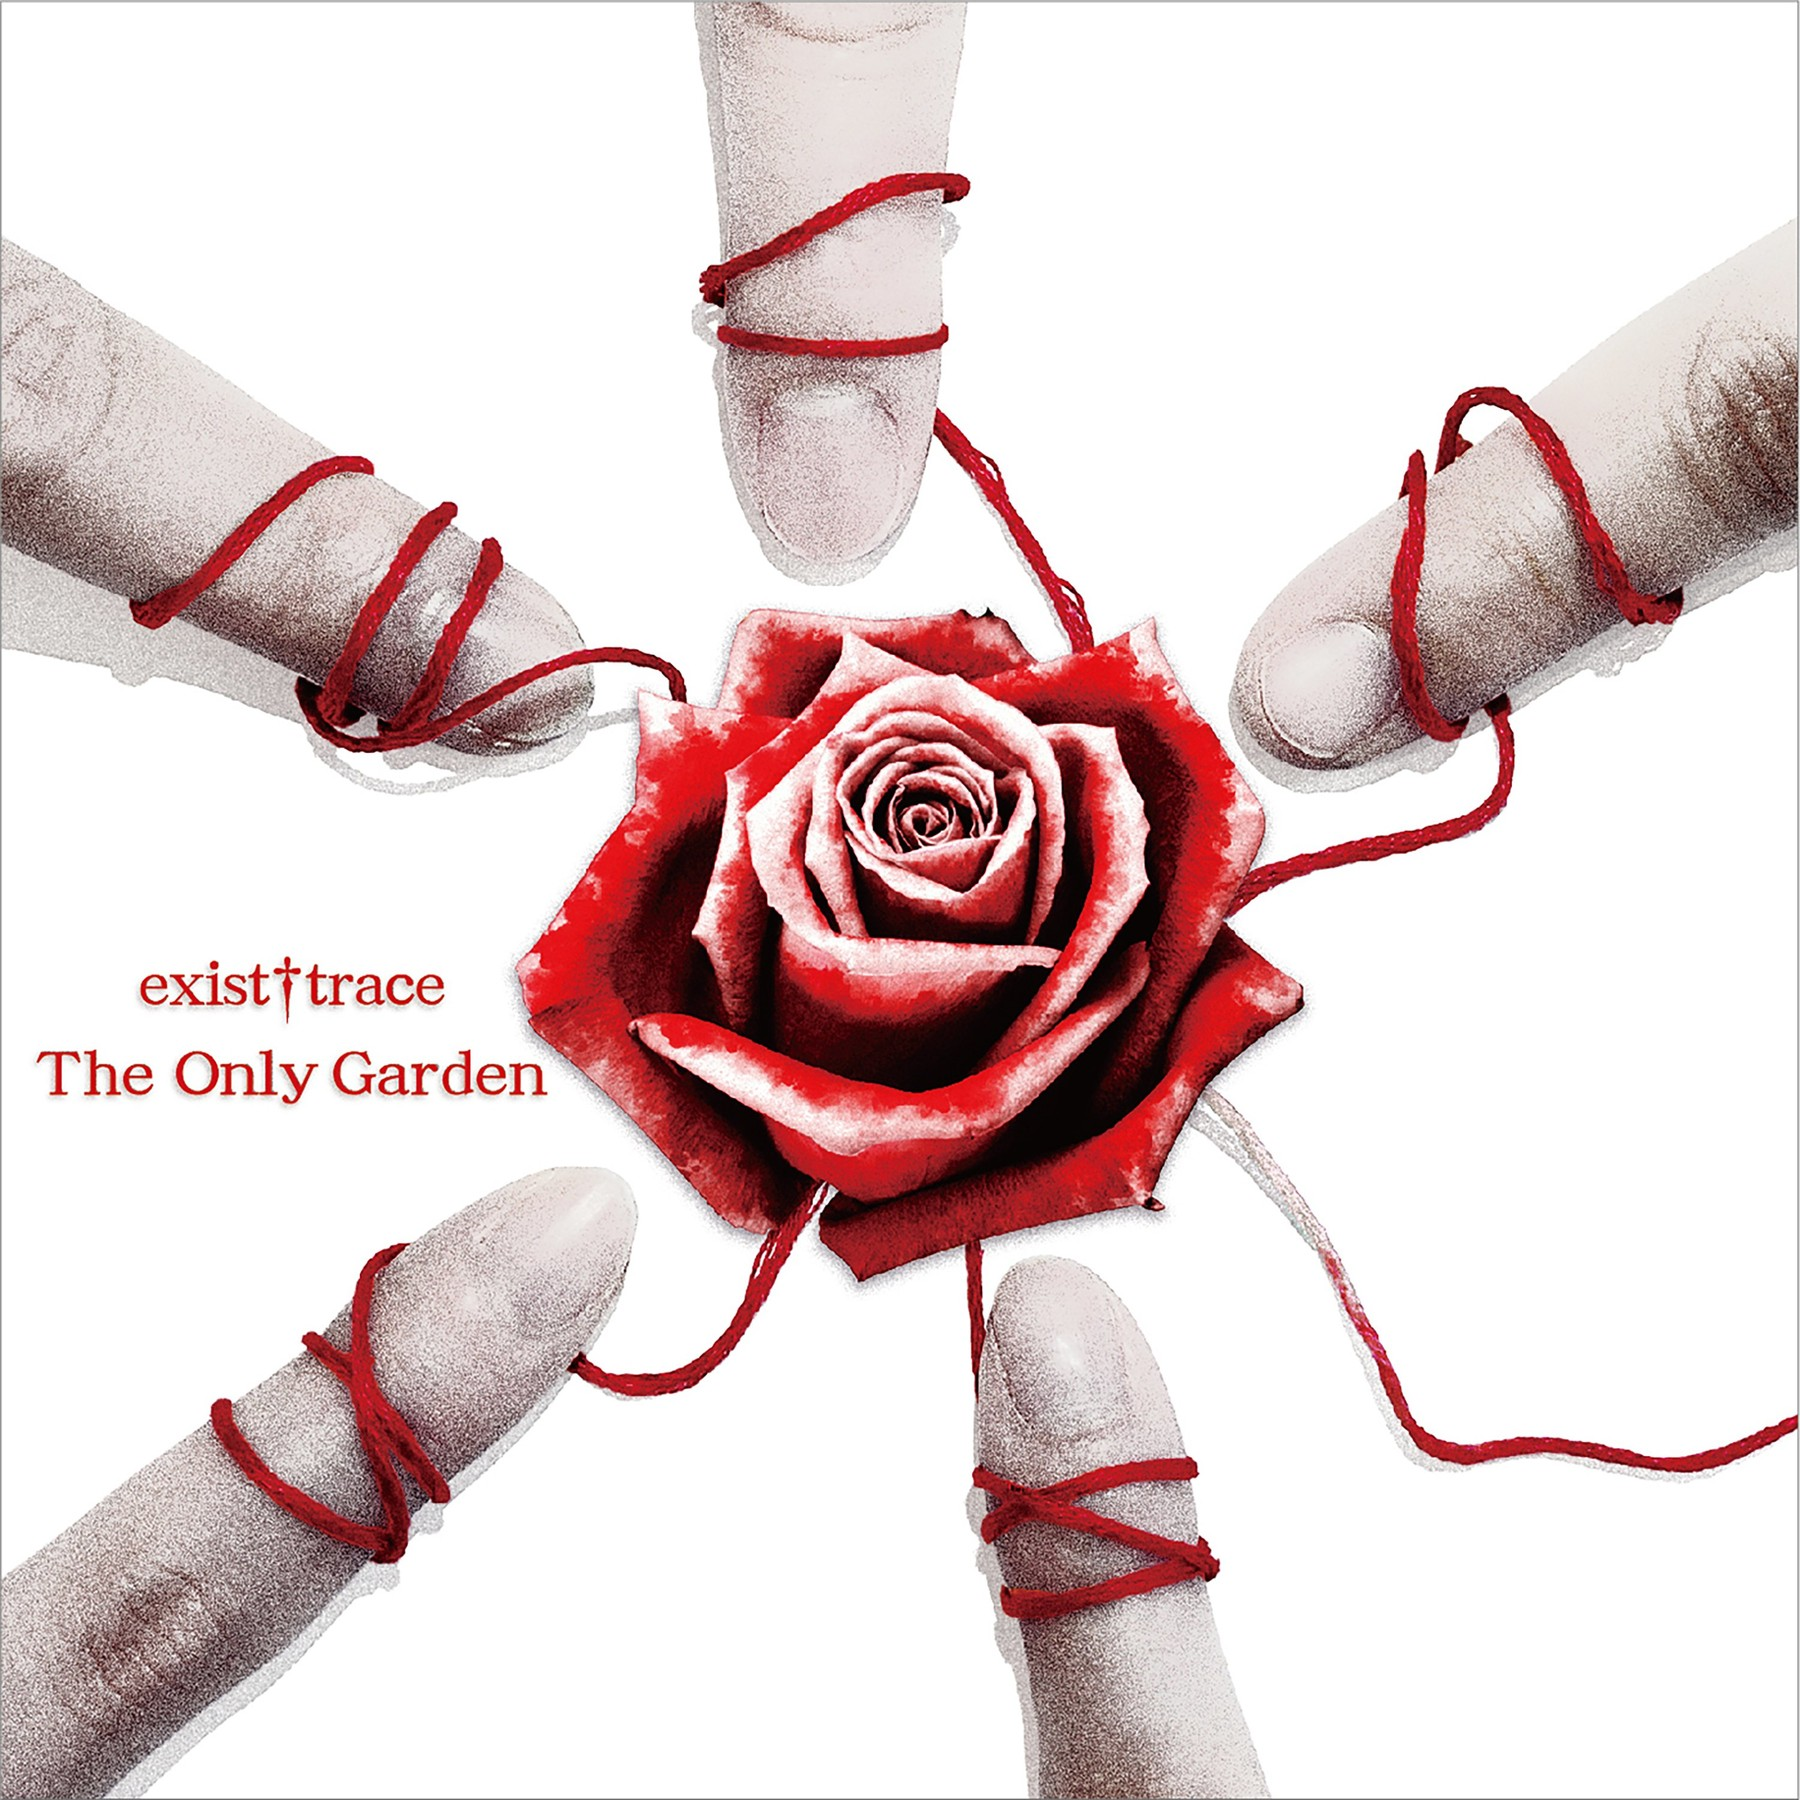 exist+trace – The Only Garden [FLAC + MP3 320] [2020.08.29]